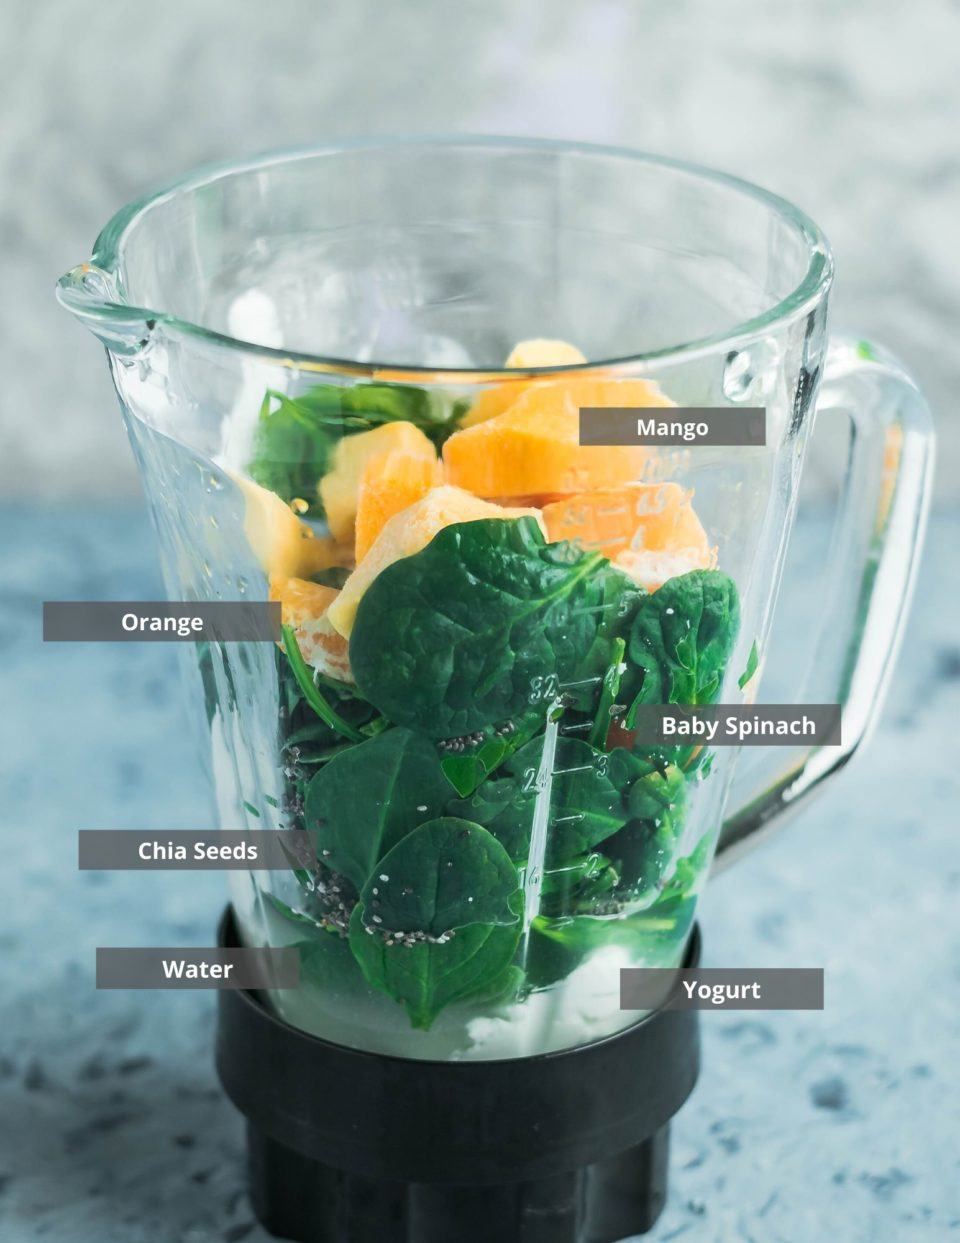 all the ingredients needed to make Mango Spinach Yogurt Green Smoothie put in a blender